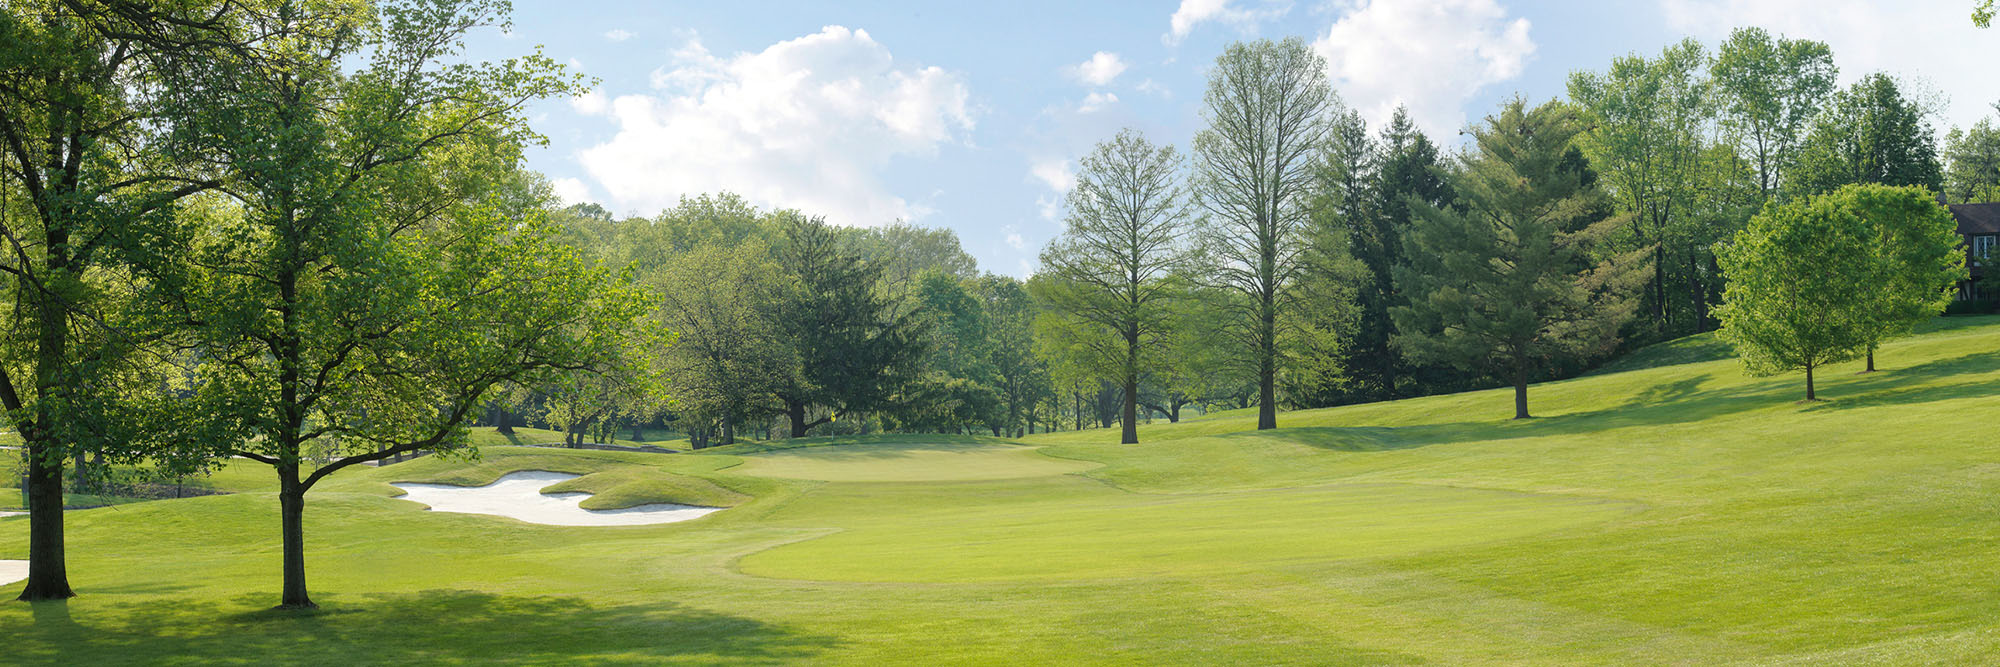 Golf Course Image - Forest Hills Country Club No. 6